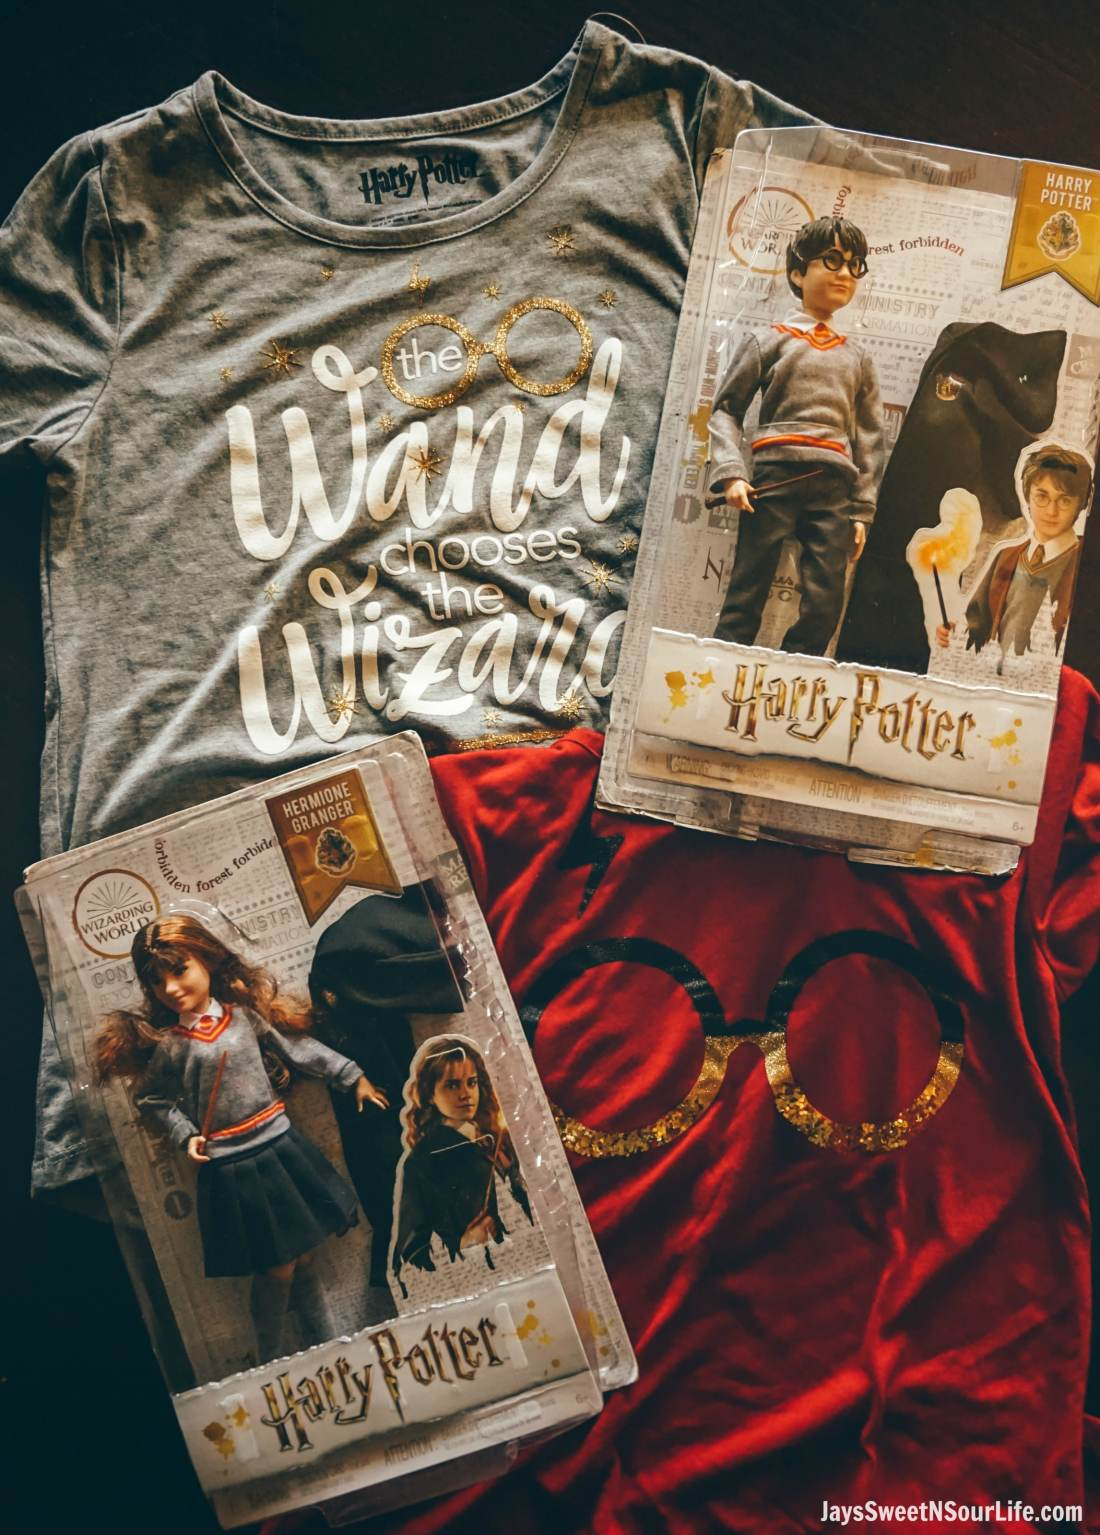 Harry Potter Dolls Display of dolls on top of Harry Potter themed girls shirts. Learn more aboutthese collectable Harry Potter Dolls at Jayssweetnsourlife.com .